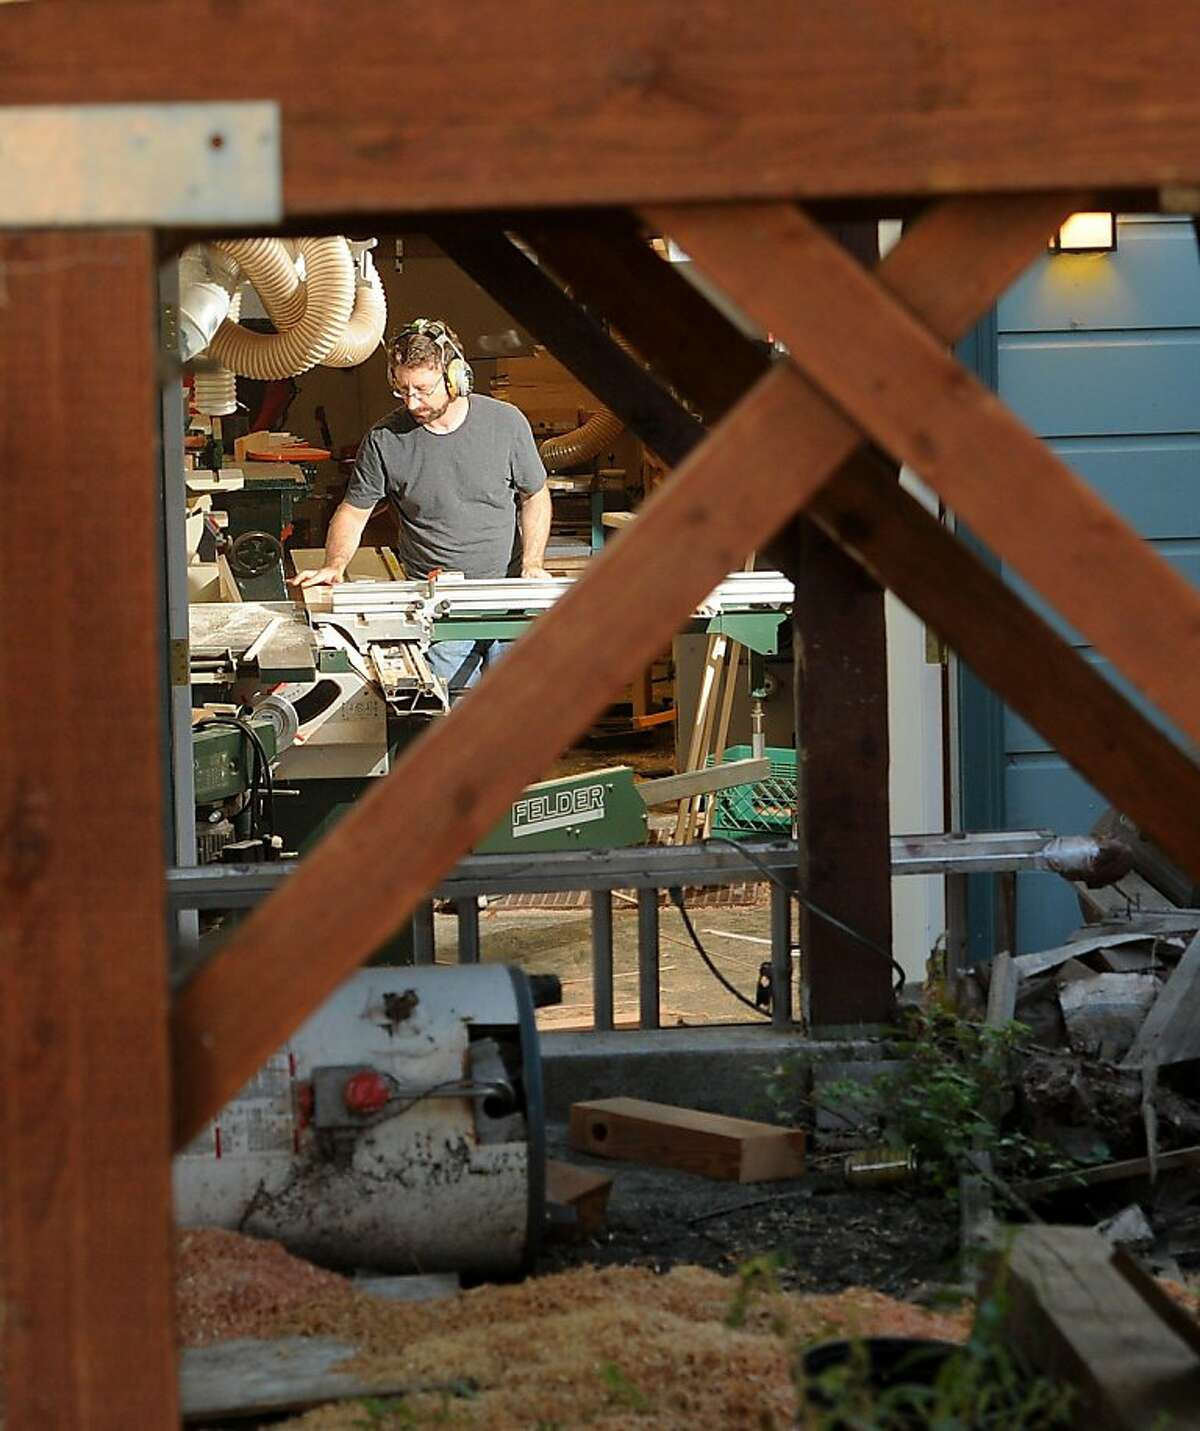 Joe Russack uses a basement workshop to build cabinets for his Oakland, Calif., home on Friday, Sept. 16, 2011. Russack intended to remodel his home by himself, but ended up hiring contractors after the city's Building Services department demanded fines for the blighted property.